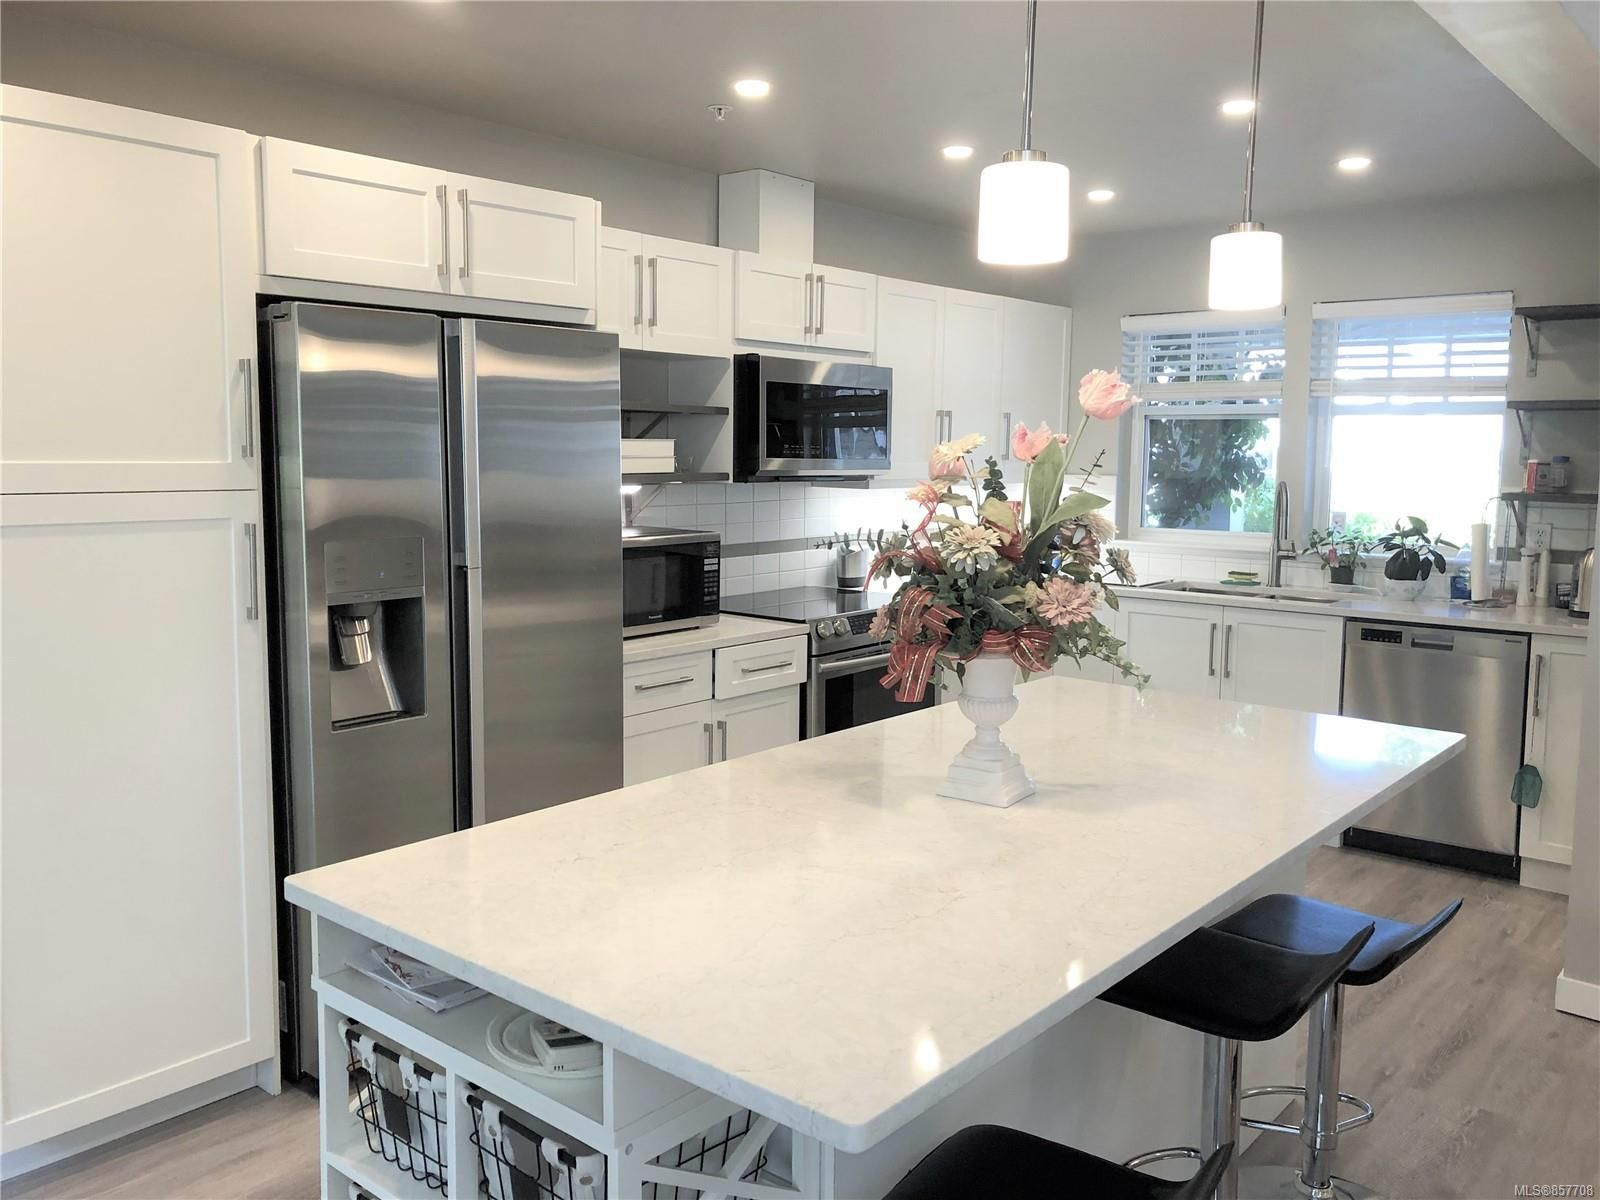 Photo 3: Photos: 6151 Bellflower Way in : Na North Nanaimo Row/Townhouse for sale (Nanaimo)  : MLS®# 857708